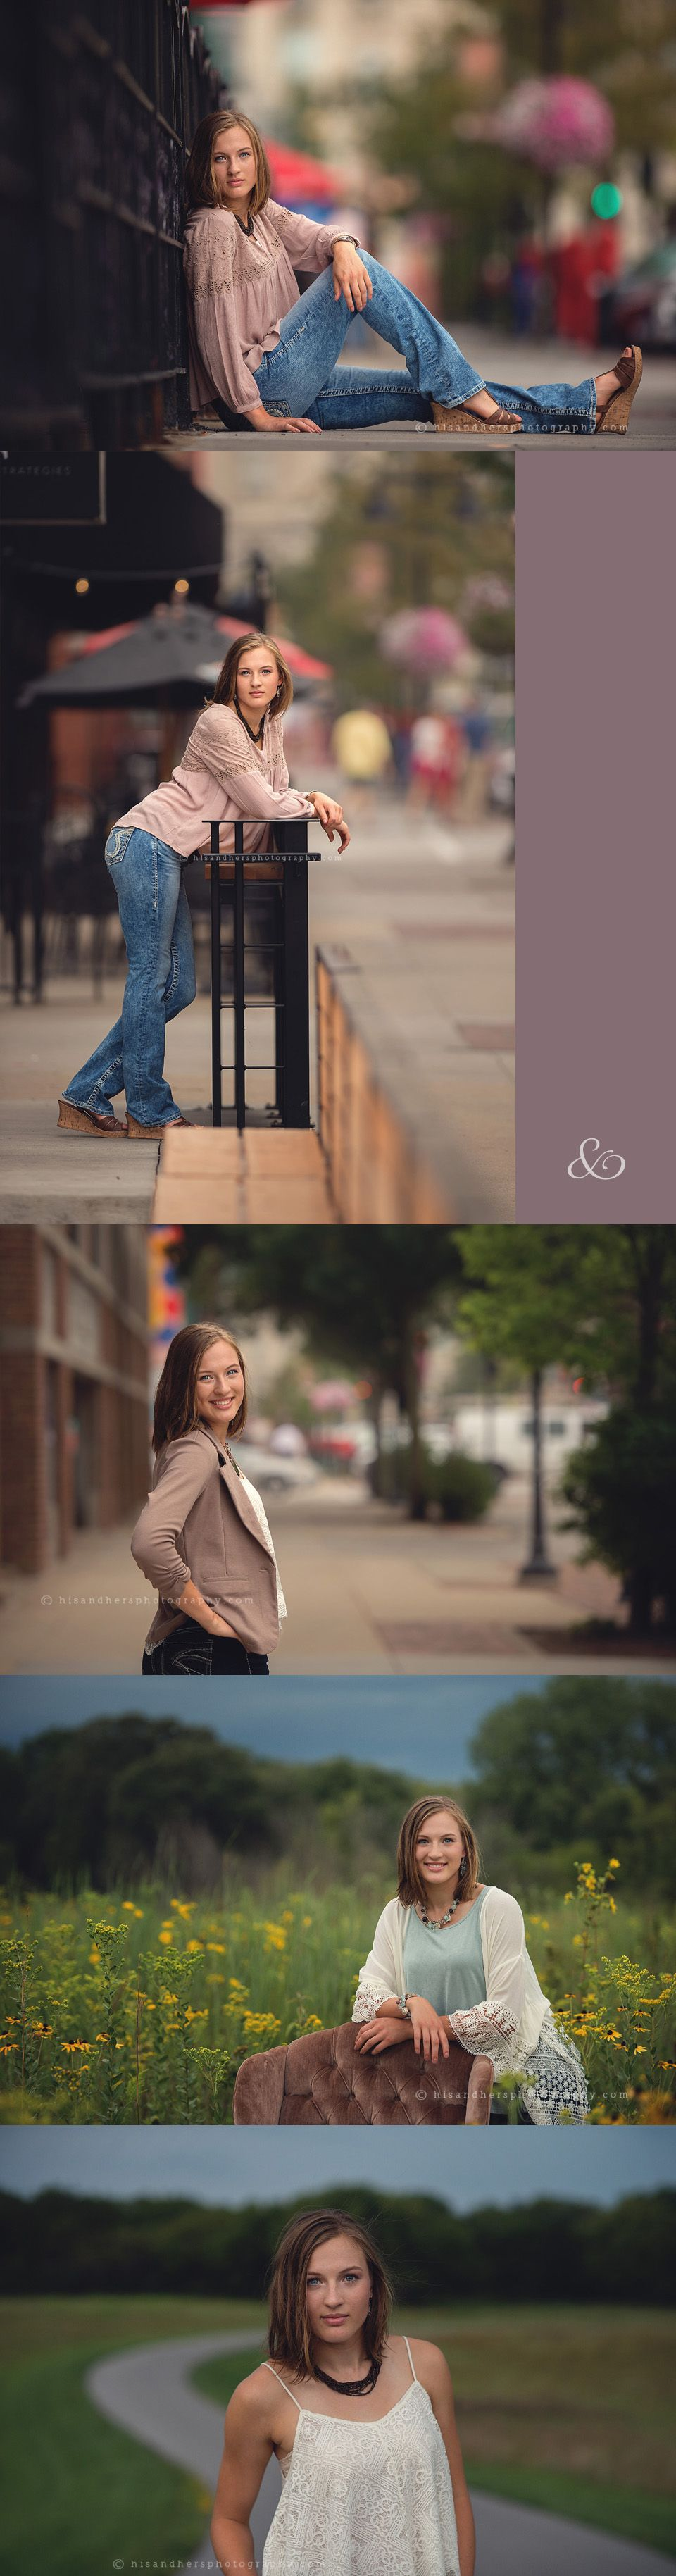 des moines iowa senior portraits senior pictures yearbook graduation photographer photography pictures class of 2017 2018 2019